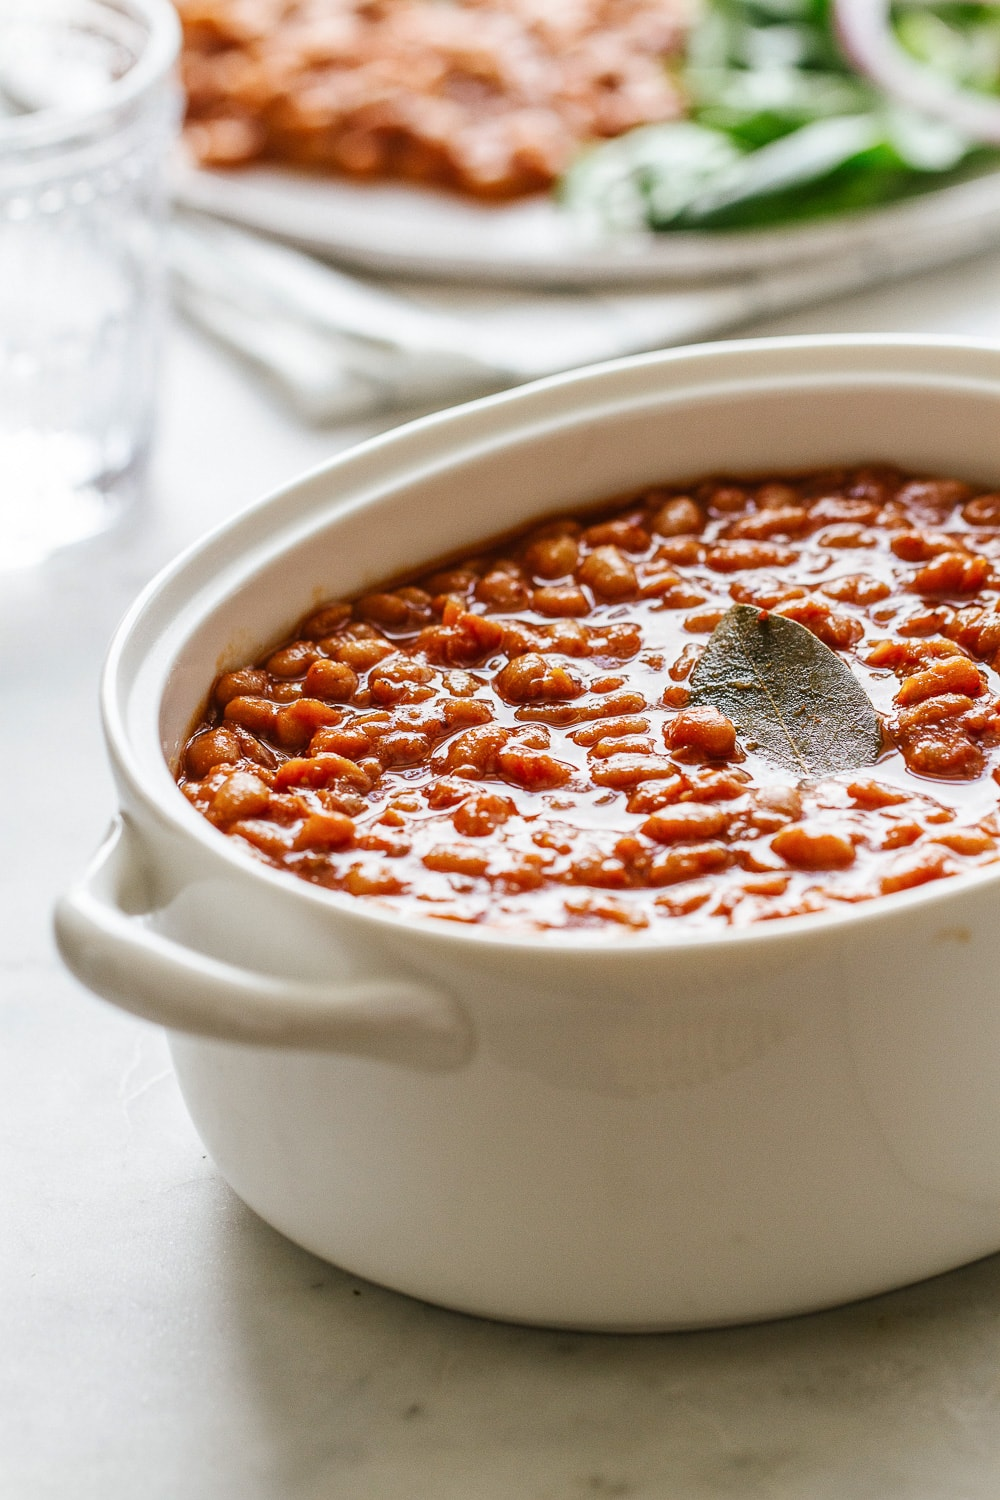 side angle view of healthy baked beans in a serving dish.